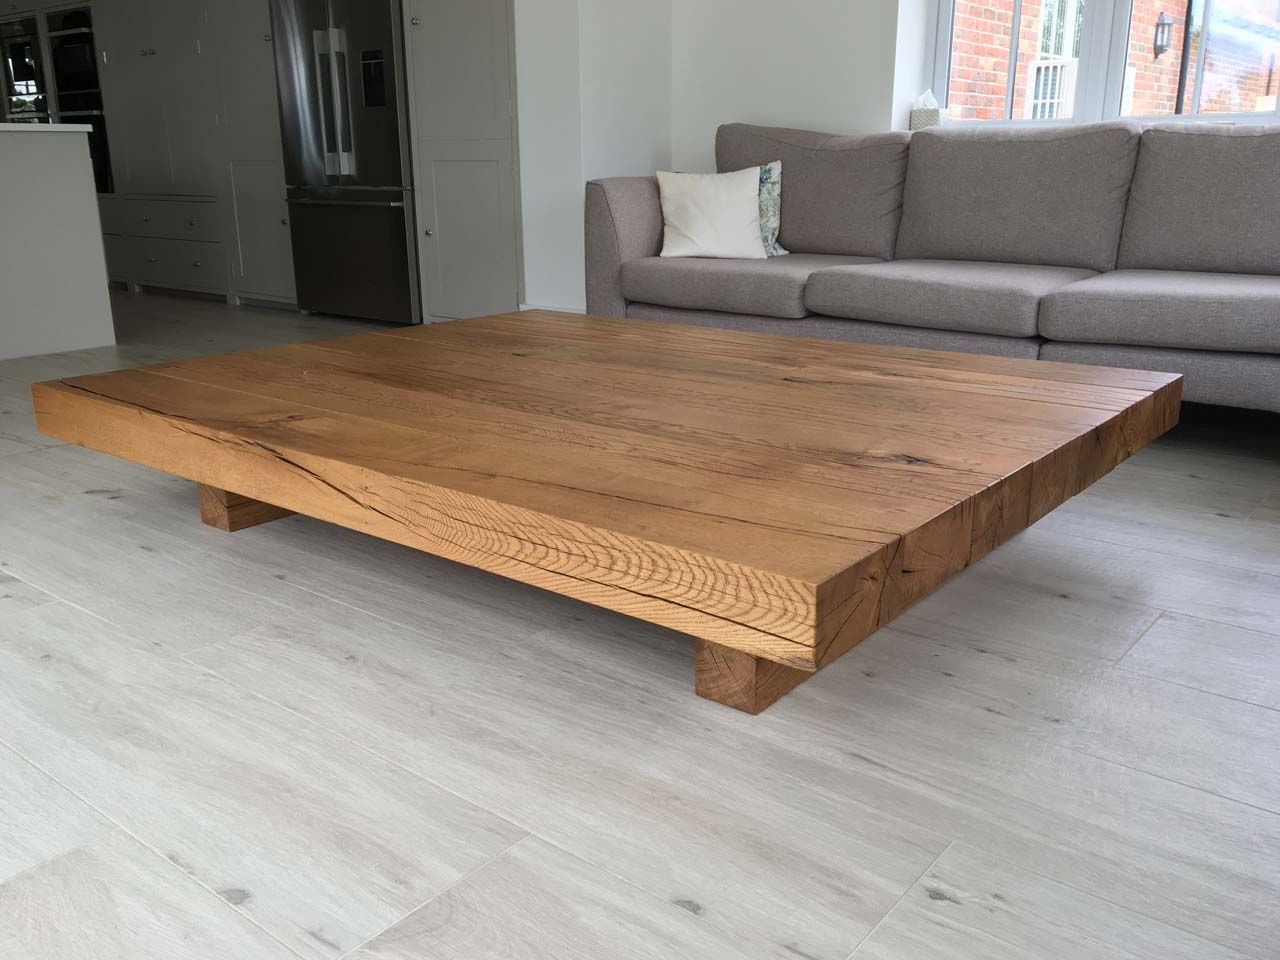 abacus-tables-project-917-pic-1